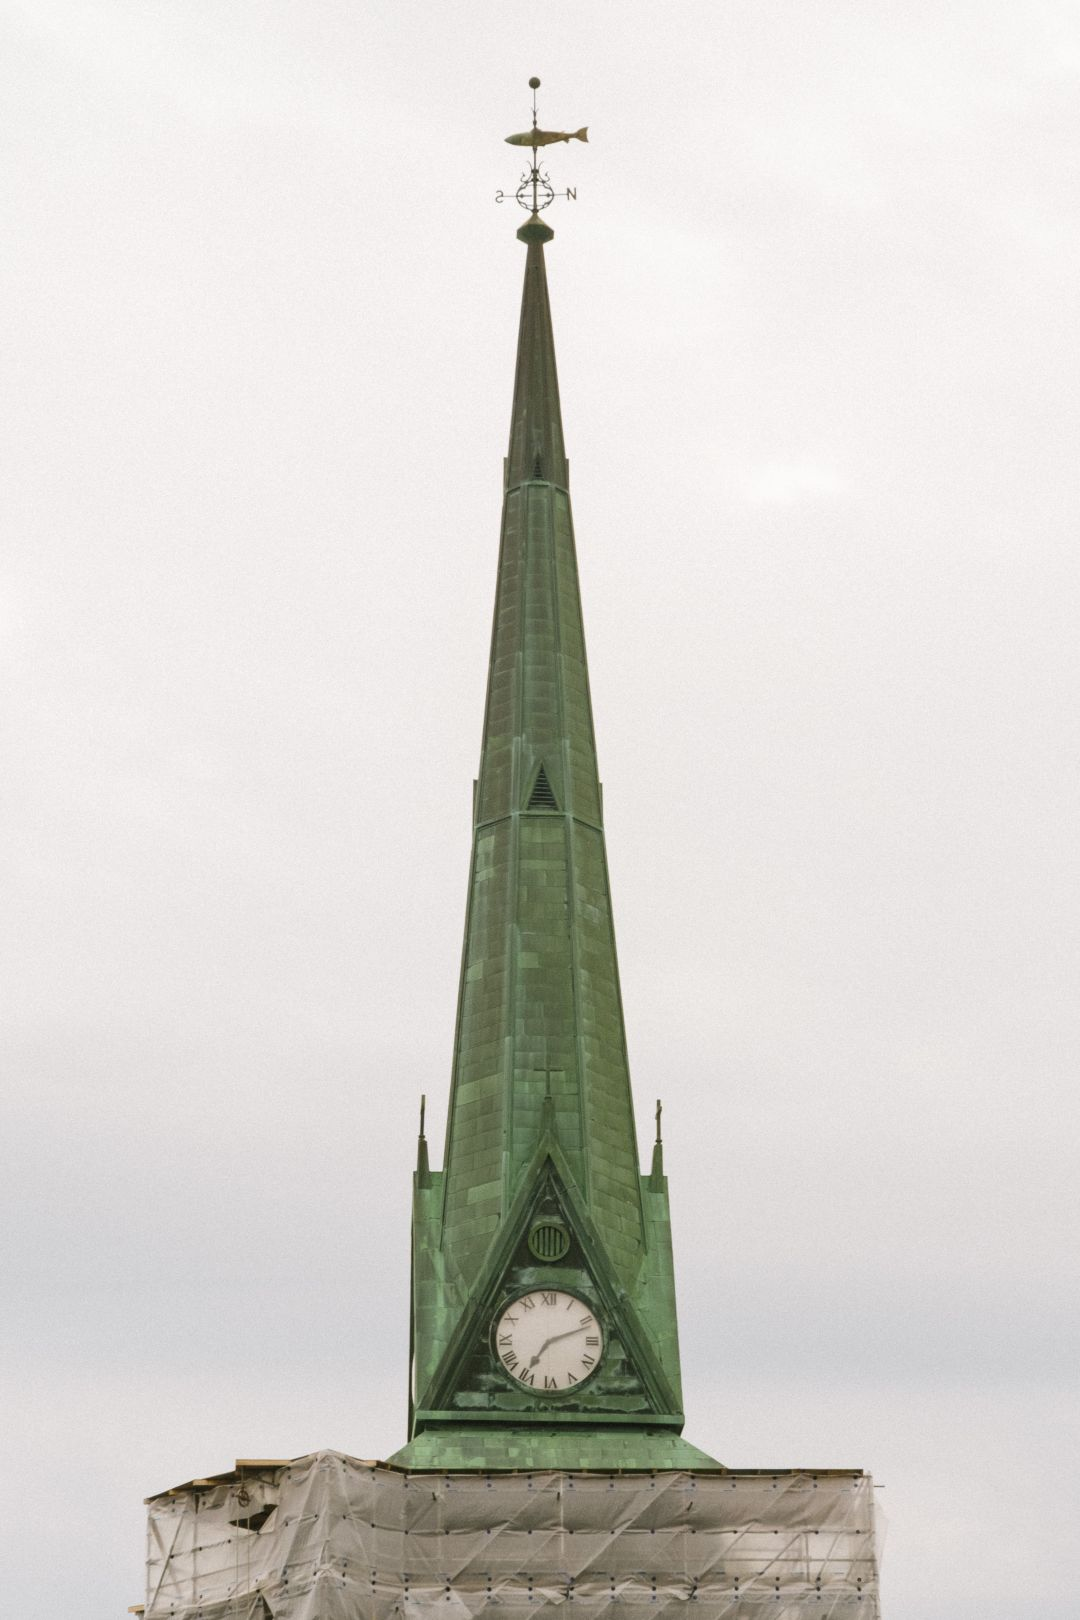 A photo depicting Saint John Church Steeple Renovation